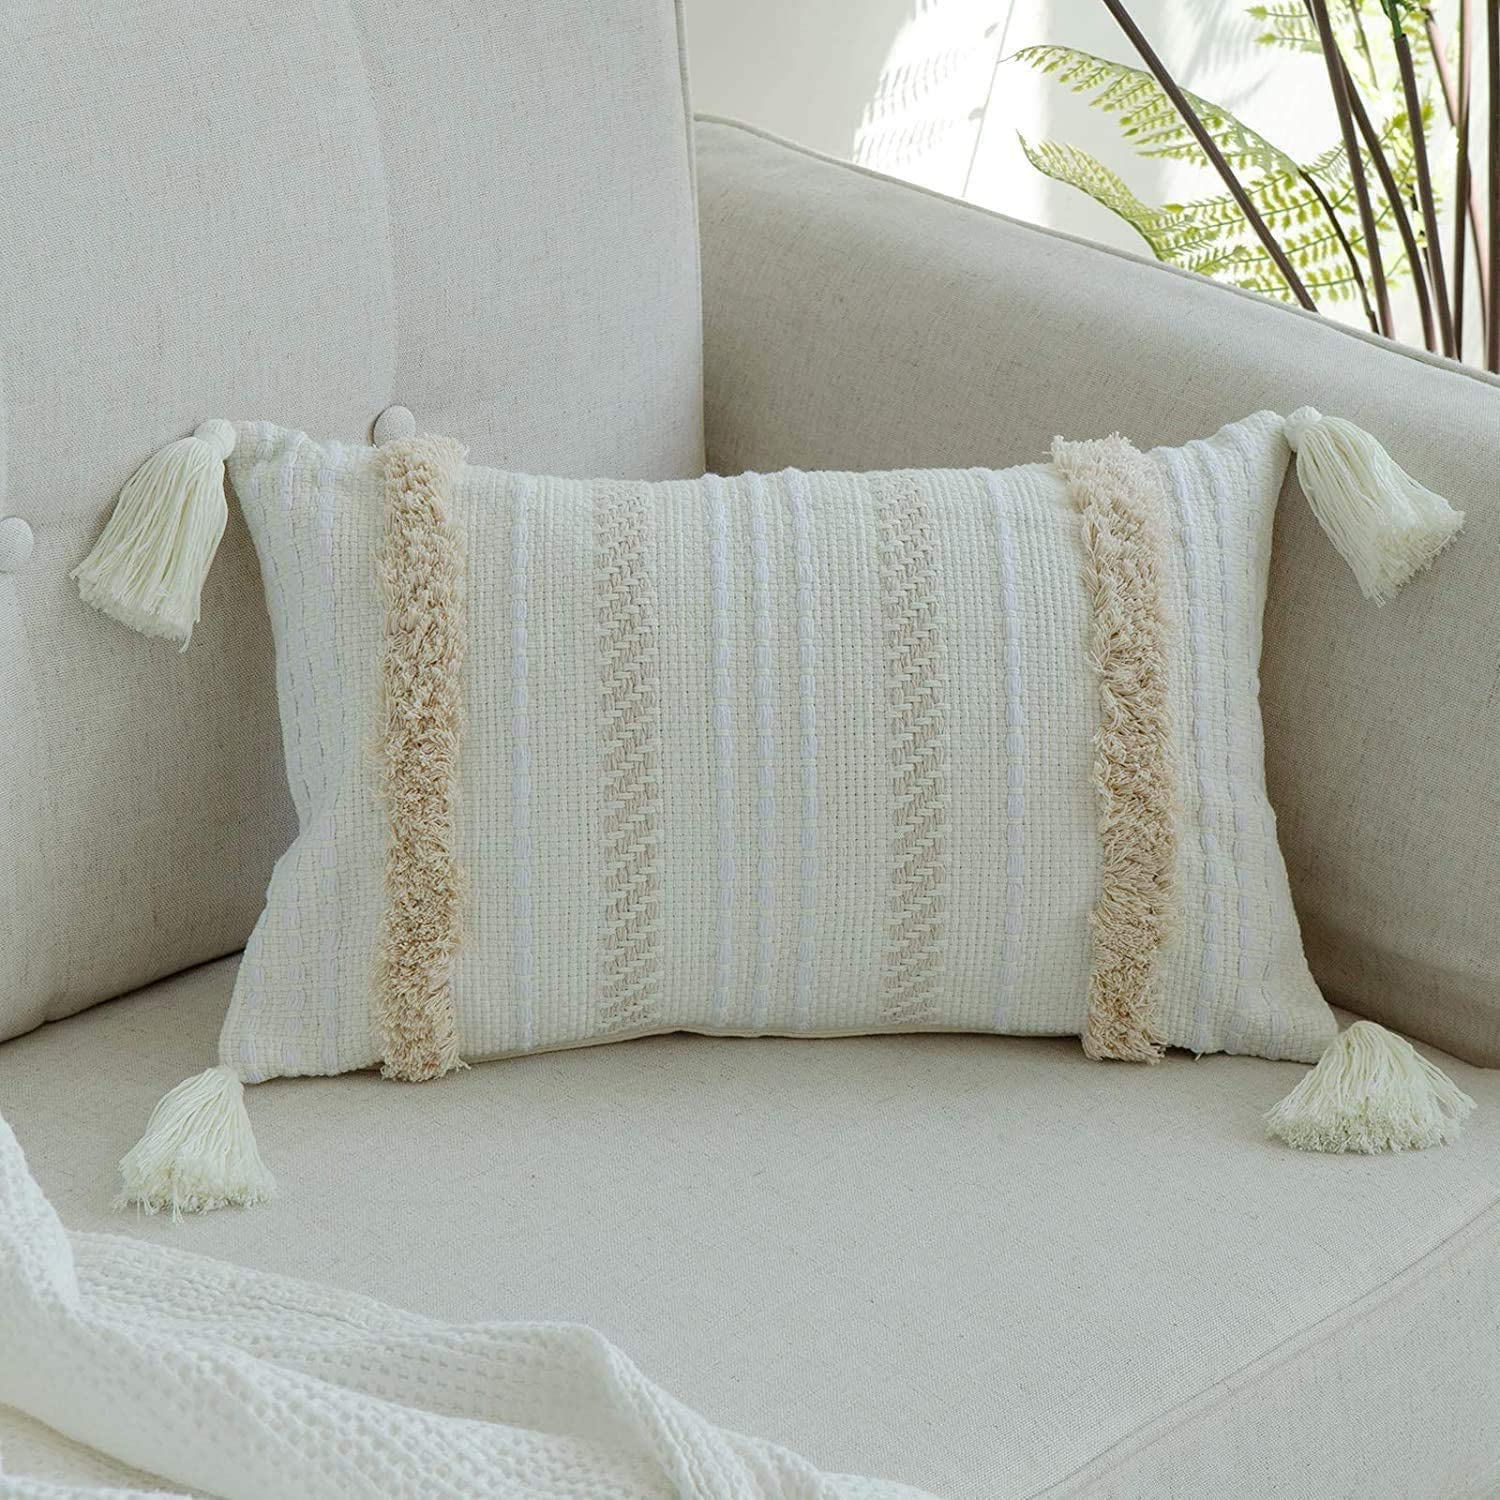 Decorative Throw Pillow Cover for Sofa Soft Boho Pillowcases with Invisible Zipper for Bedroom Livingroom Couch Farmhouse MeMoreCool Cushion Covers Home Decor Tasseled Pillow Case 30x50cm